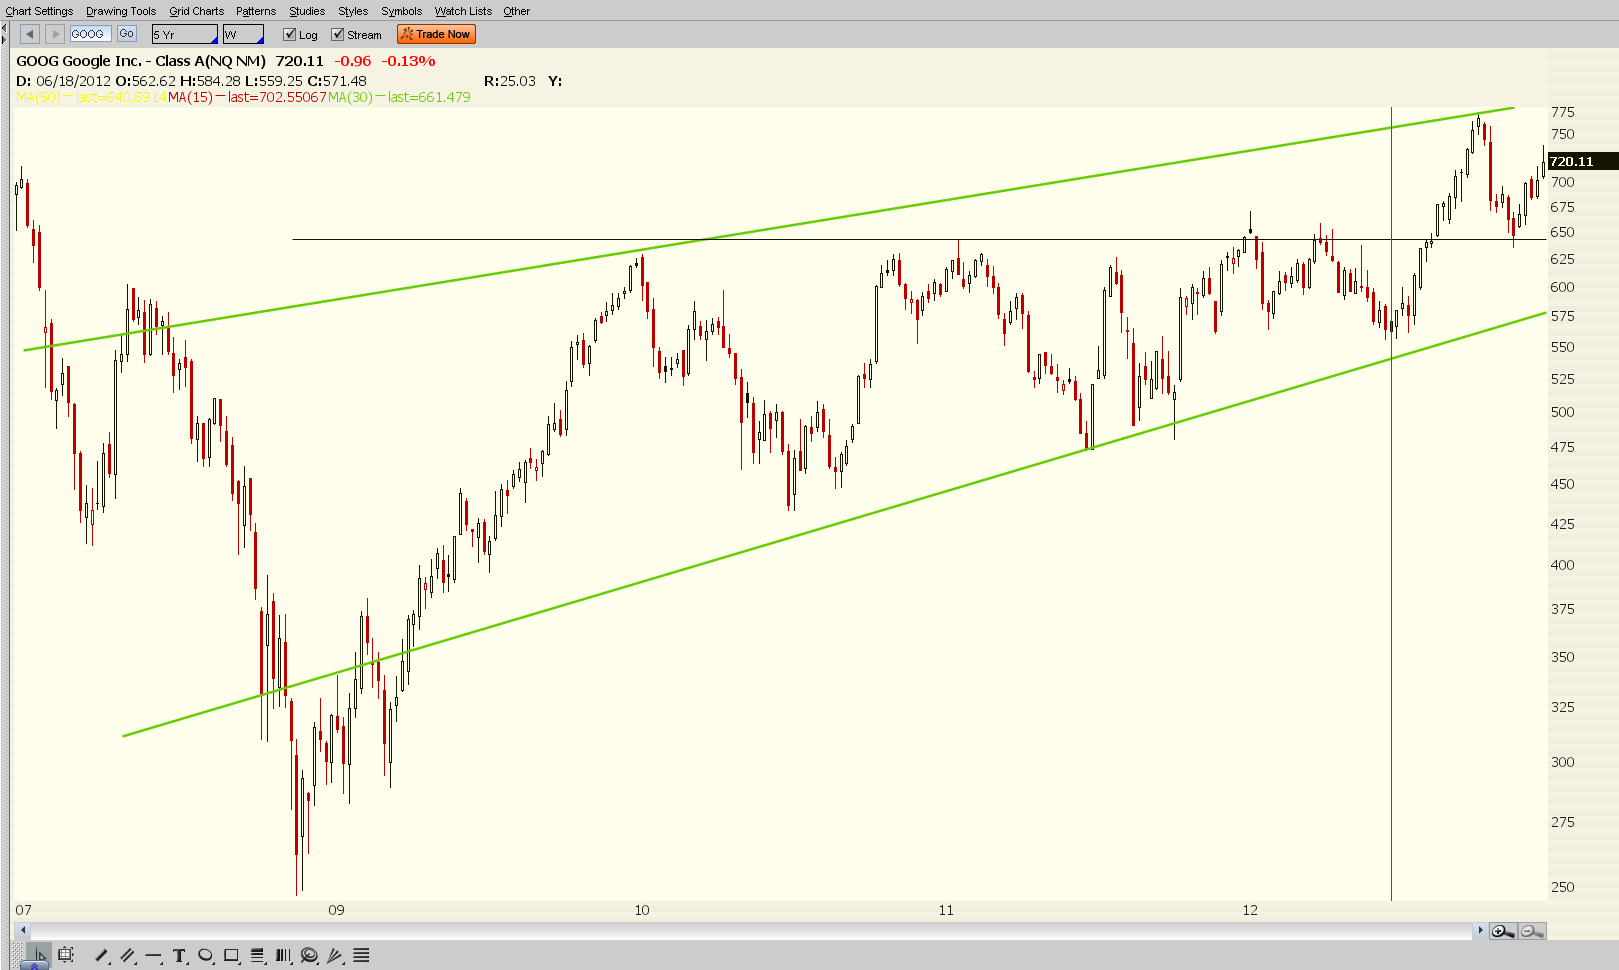 $GOOG Heading To The Bottom Of Channel? (VIDEO)